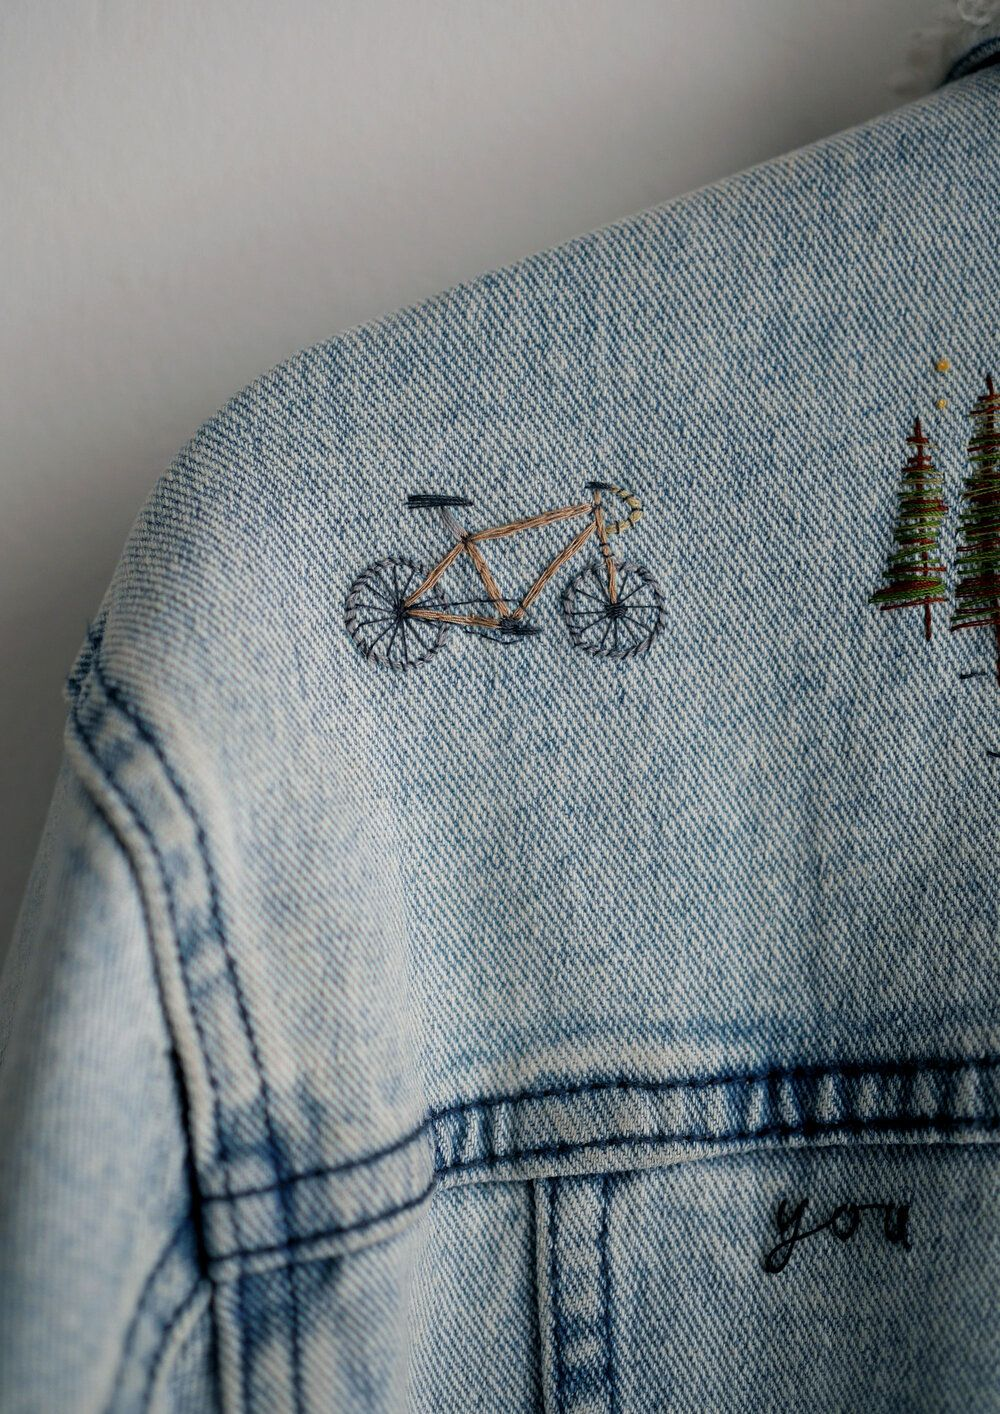 Ink & Thimble Denim Jacket Embroidery with Embroidered Bike